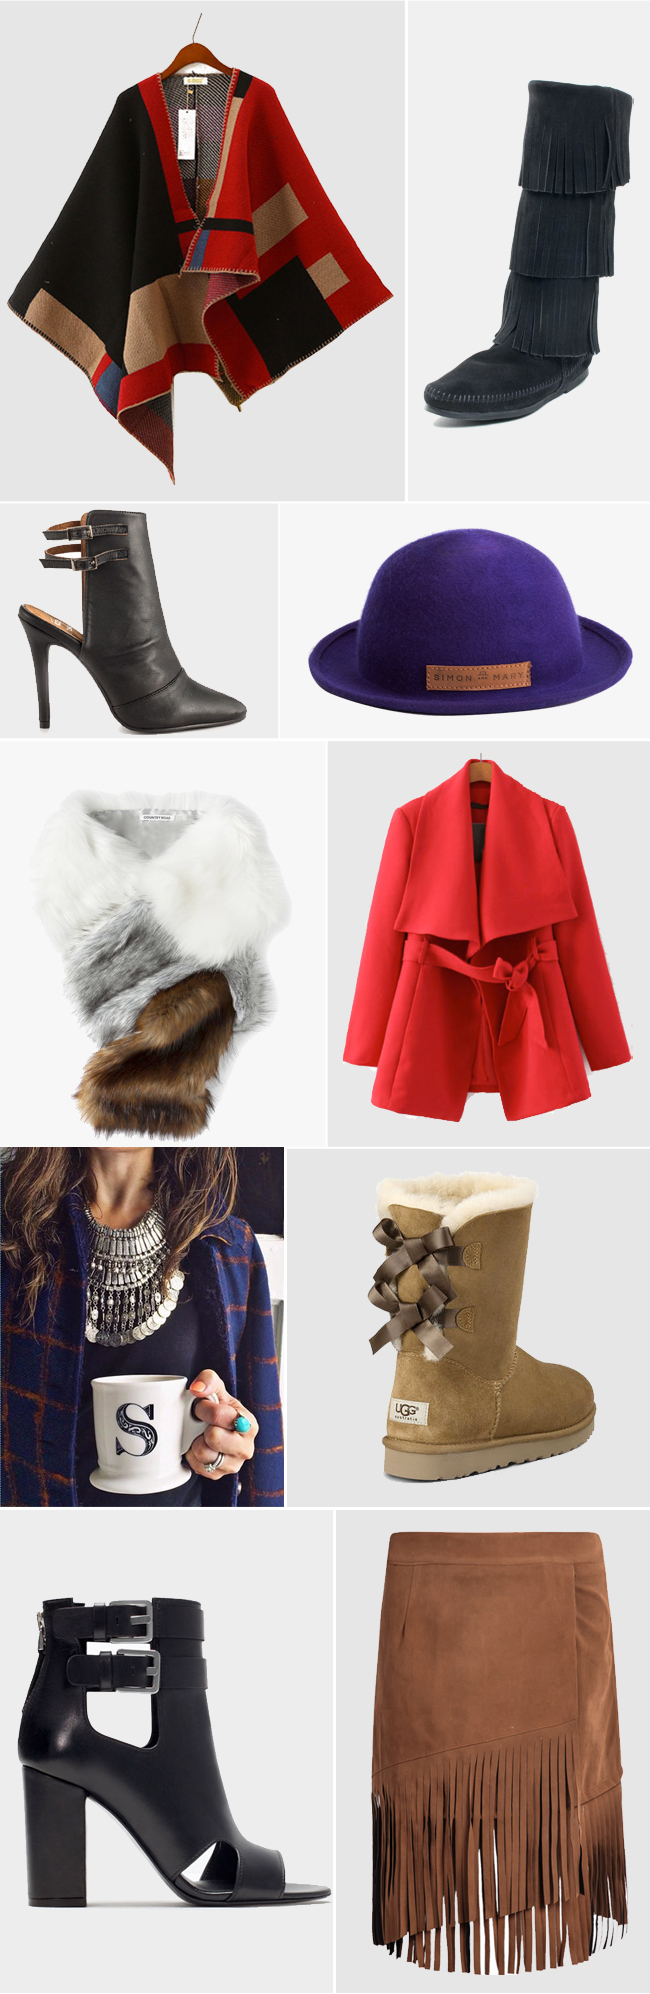 stylescoop-winter-wishlist